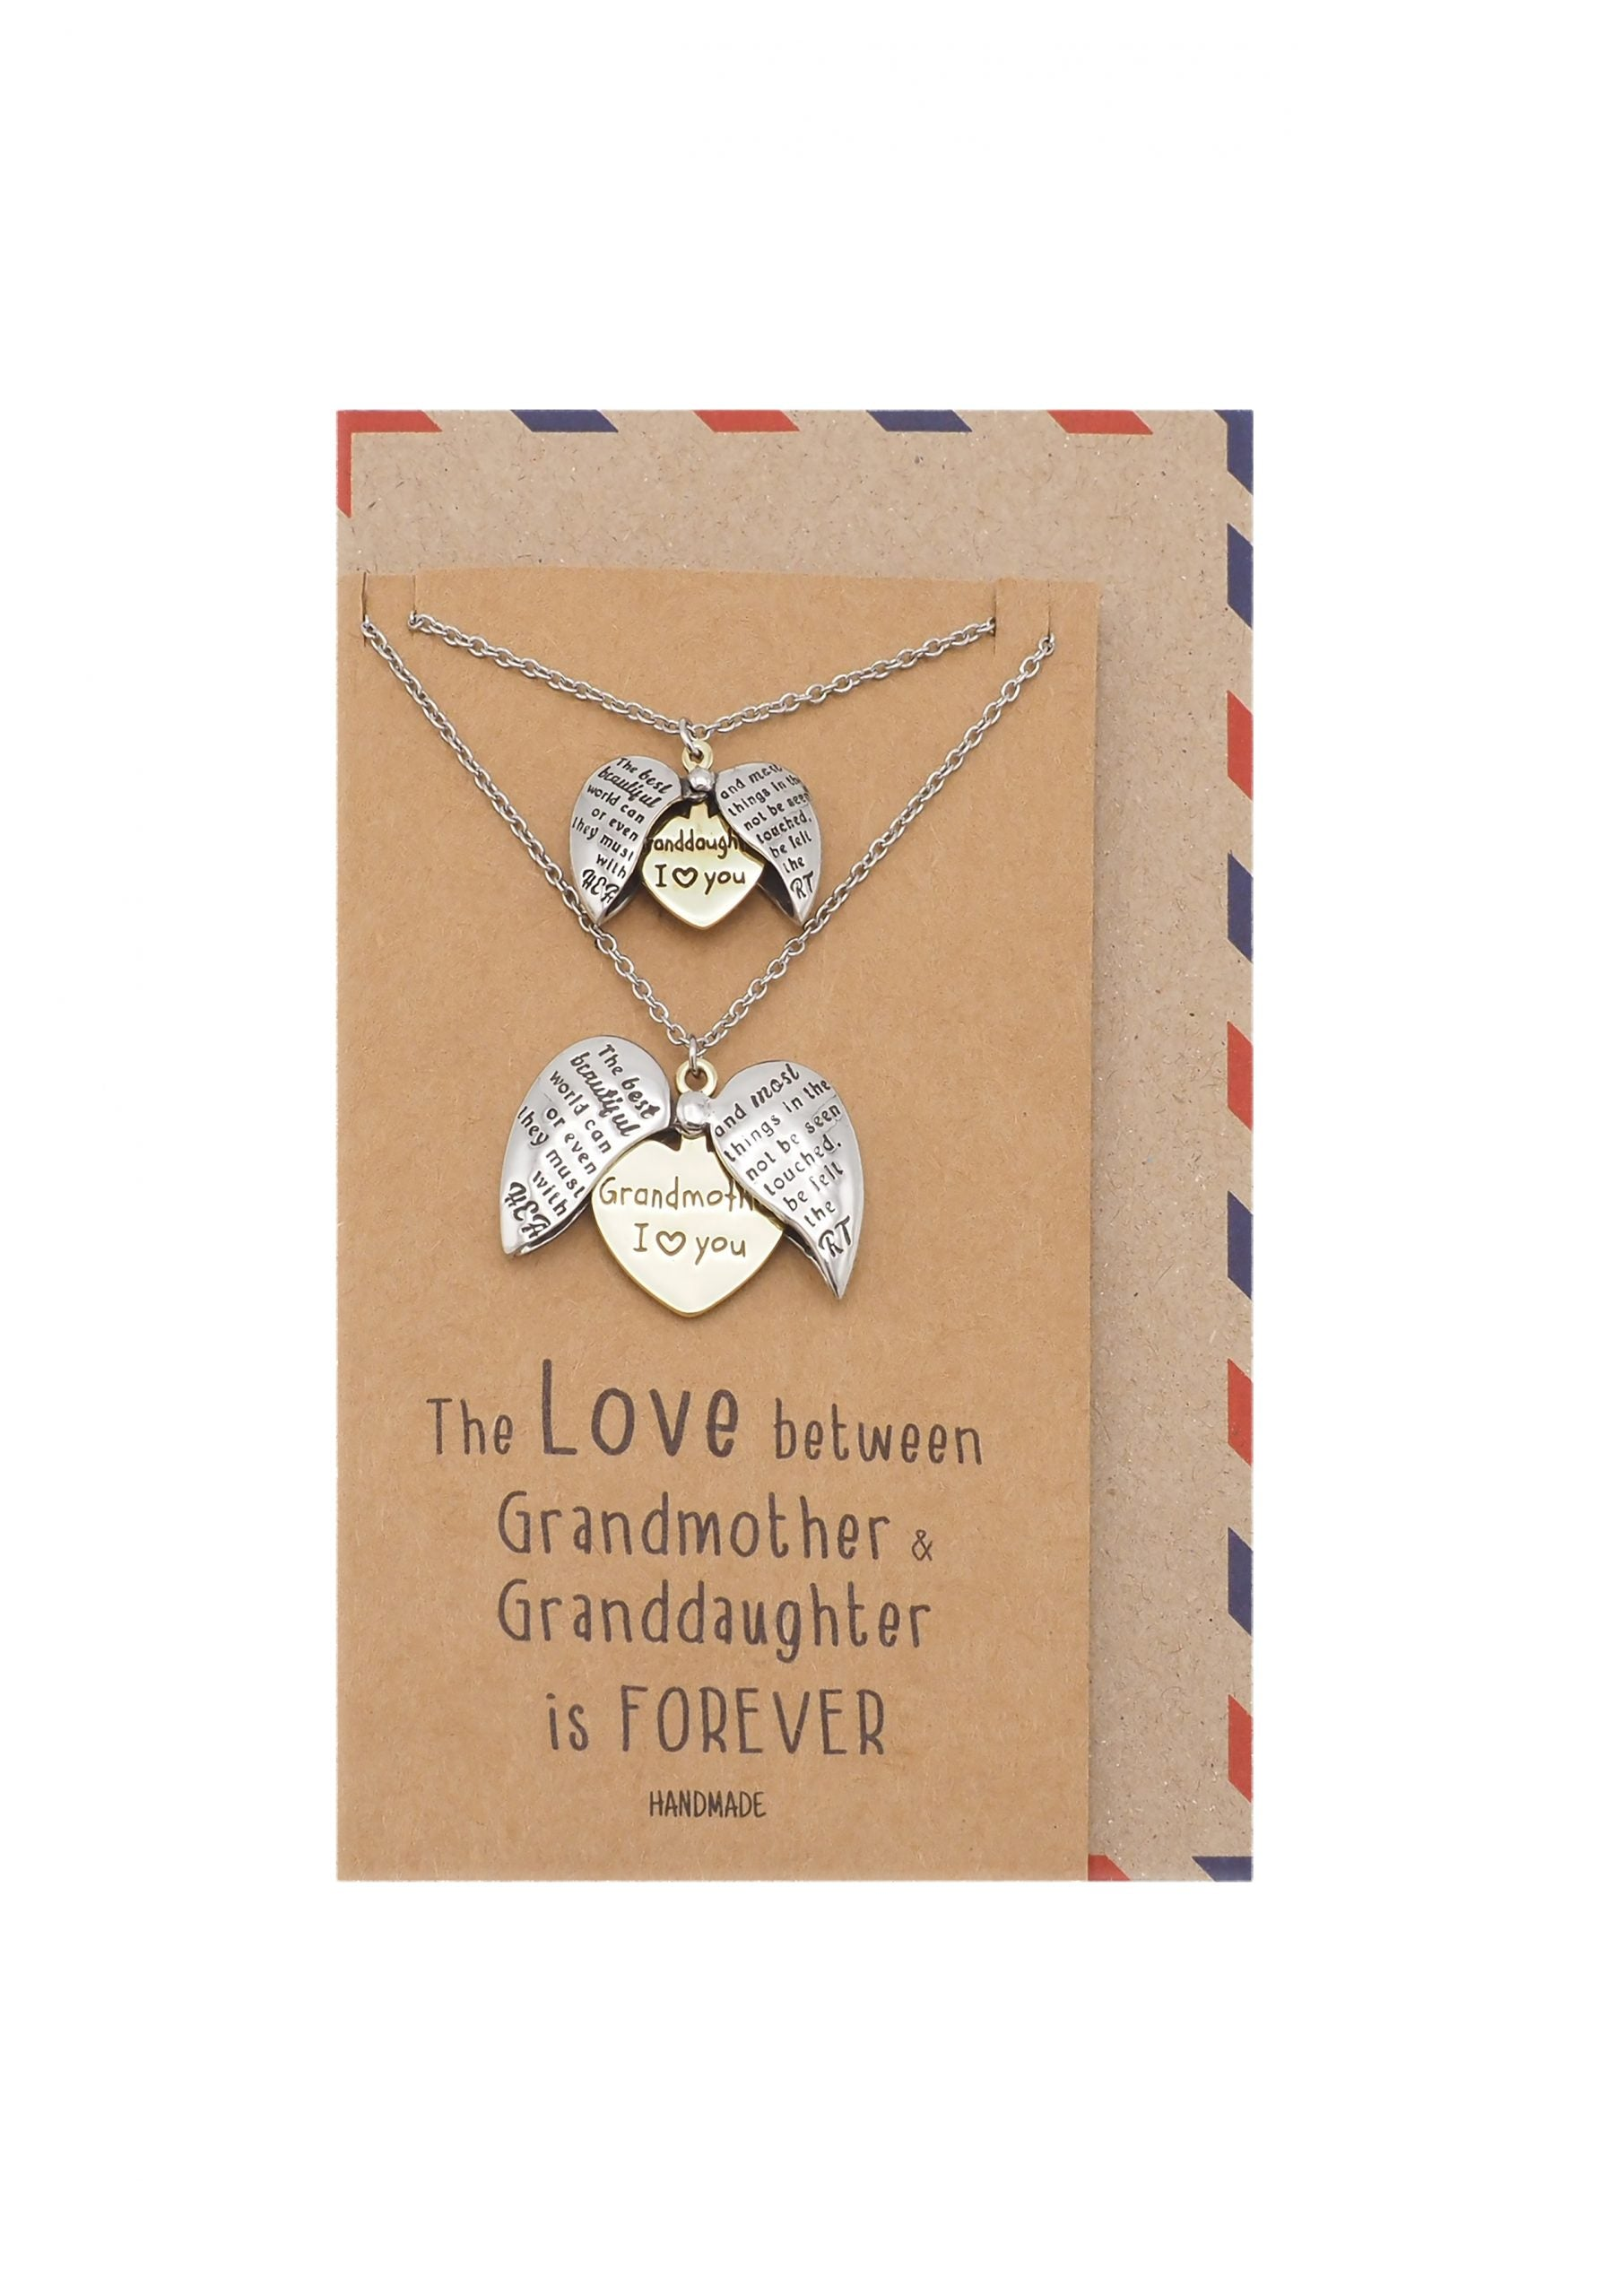 Helen Grandmother Granddaughter Locket Pendant Necklace, Set for 2 with Greeting Card